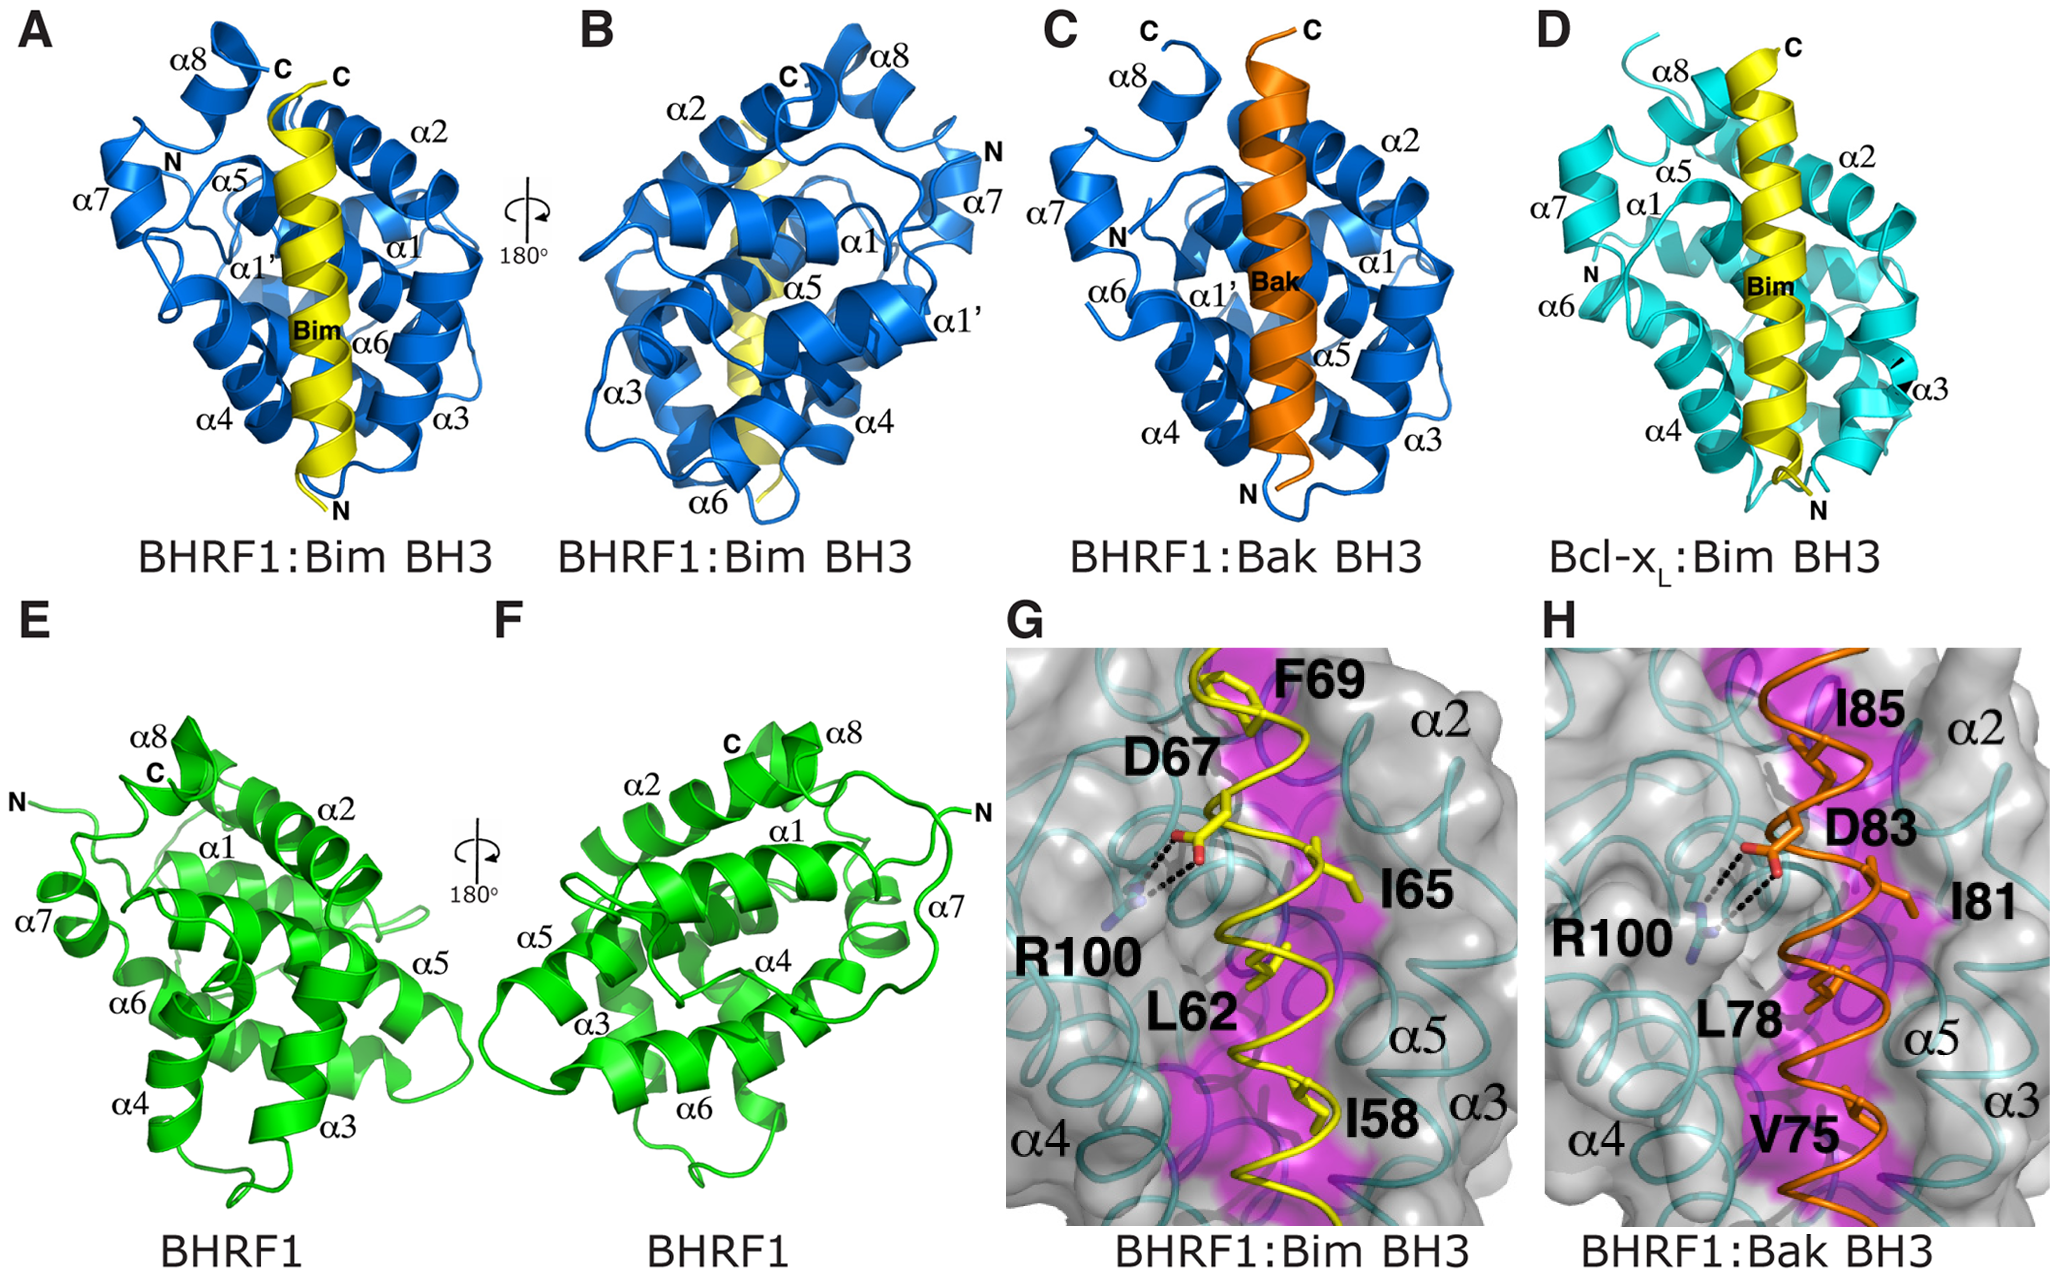 BH3 peptides bind BHRF1 in a canonical binding groove.